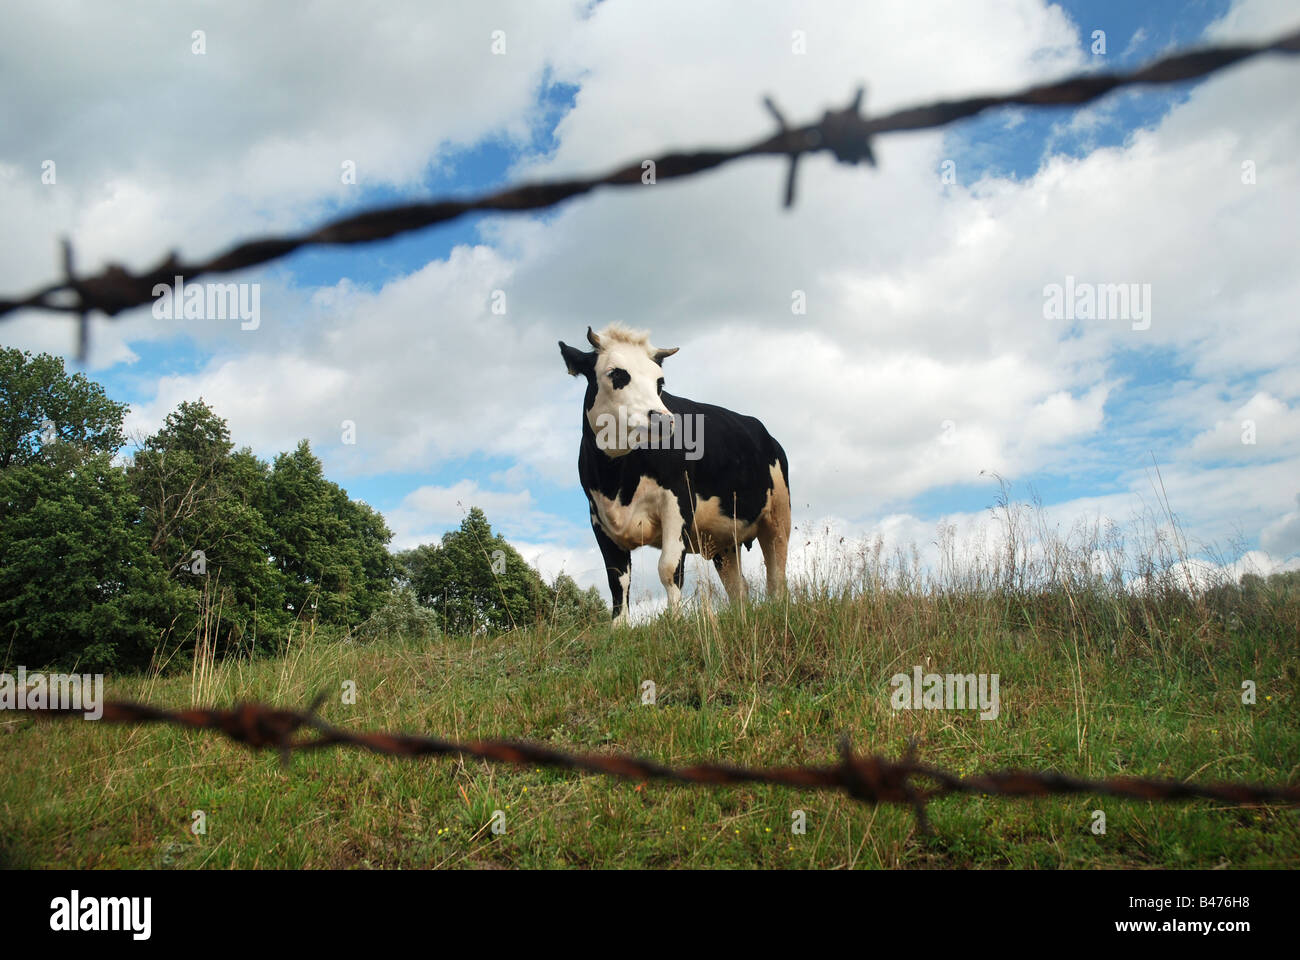 Cow on a pastureland, Masovia region in Poland Stock Photo